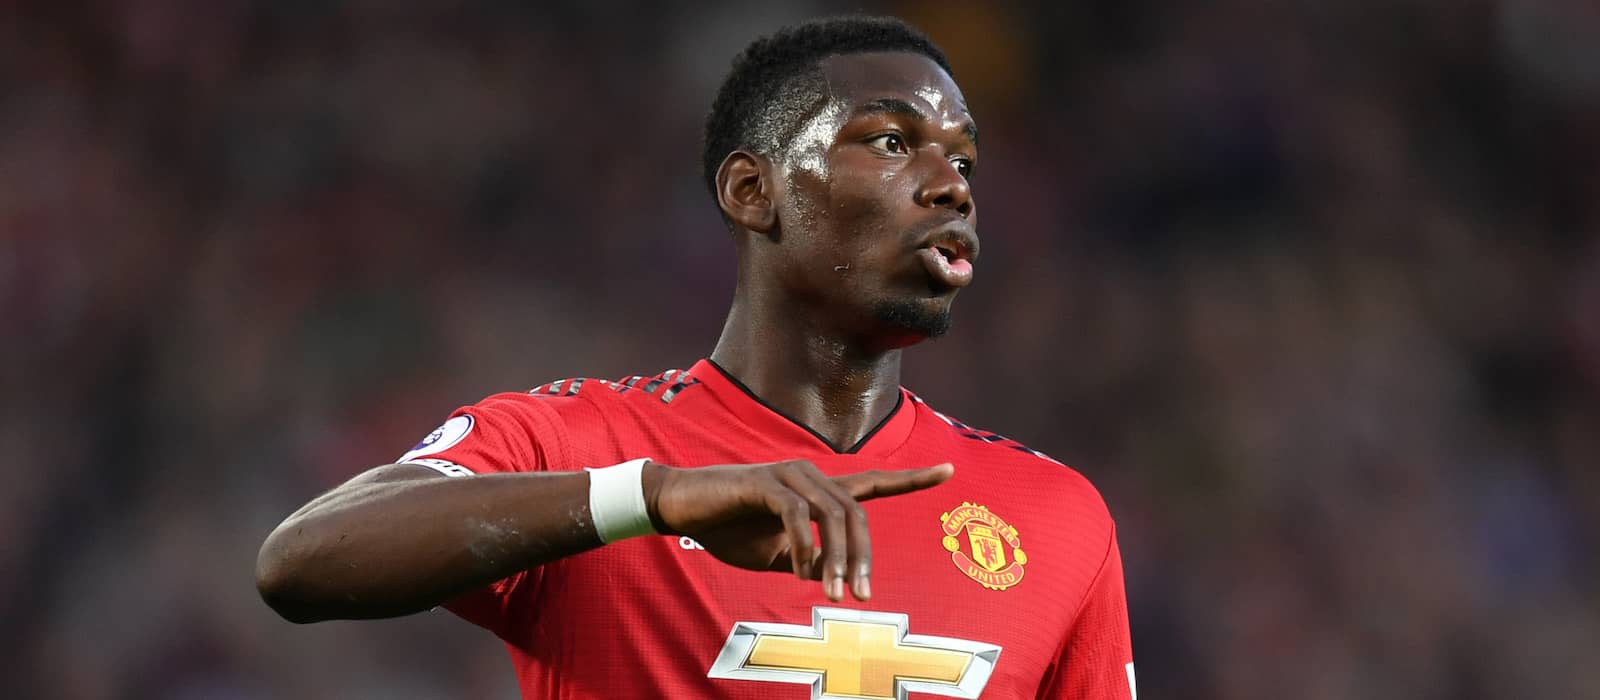 Barcelona move on from interest in Manchester United's Paul Pogba: report